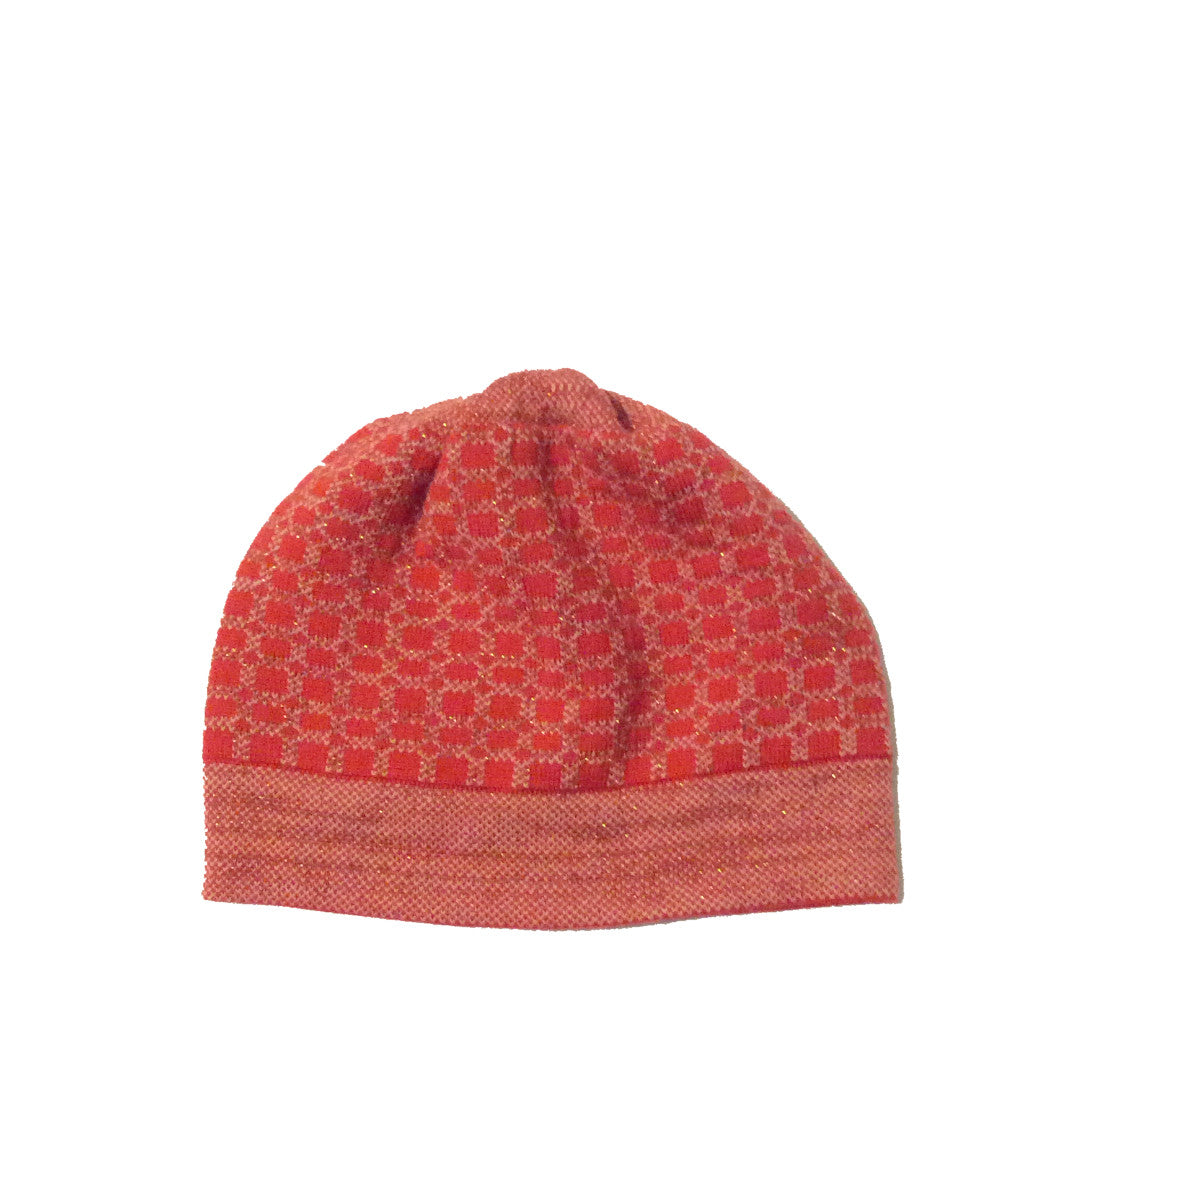 Stacy Hat - Red - Little Citizens Boutique  - 1